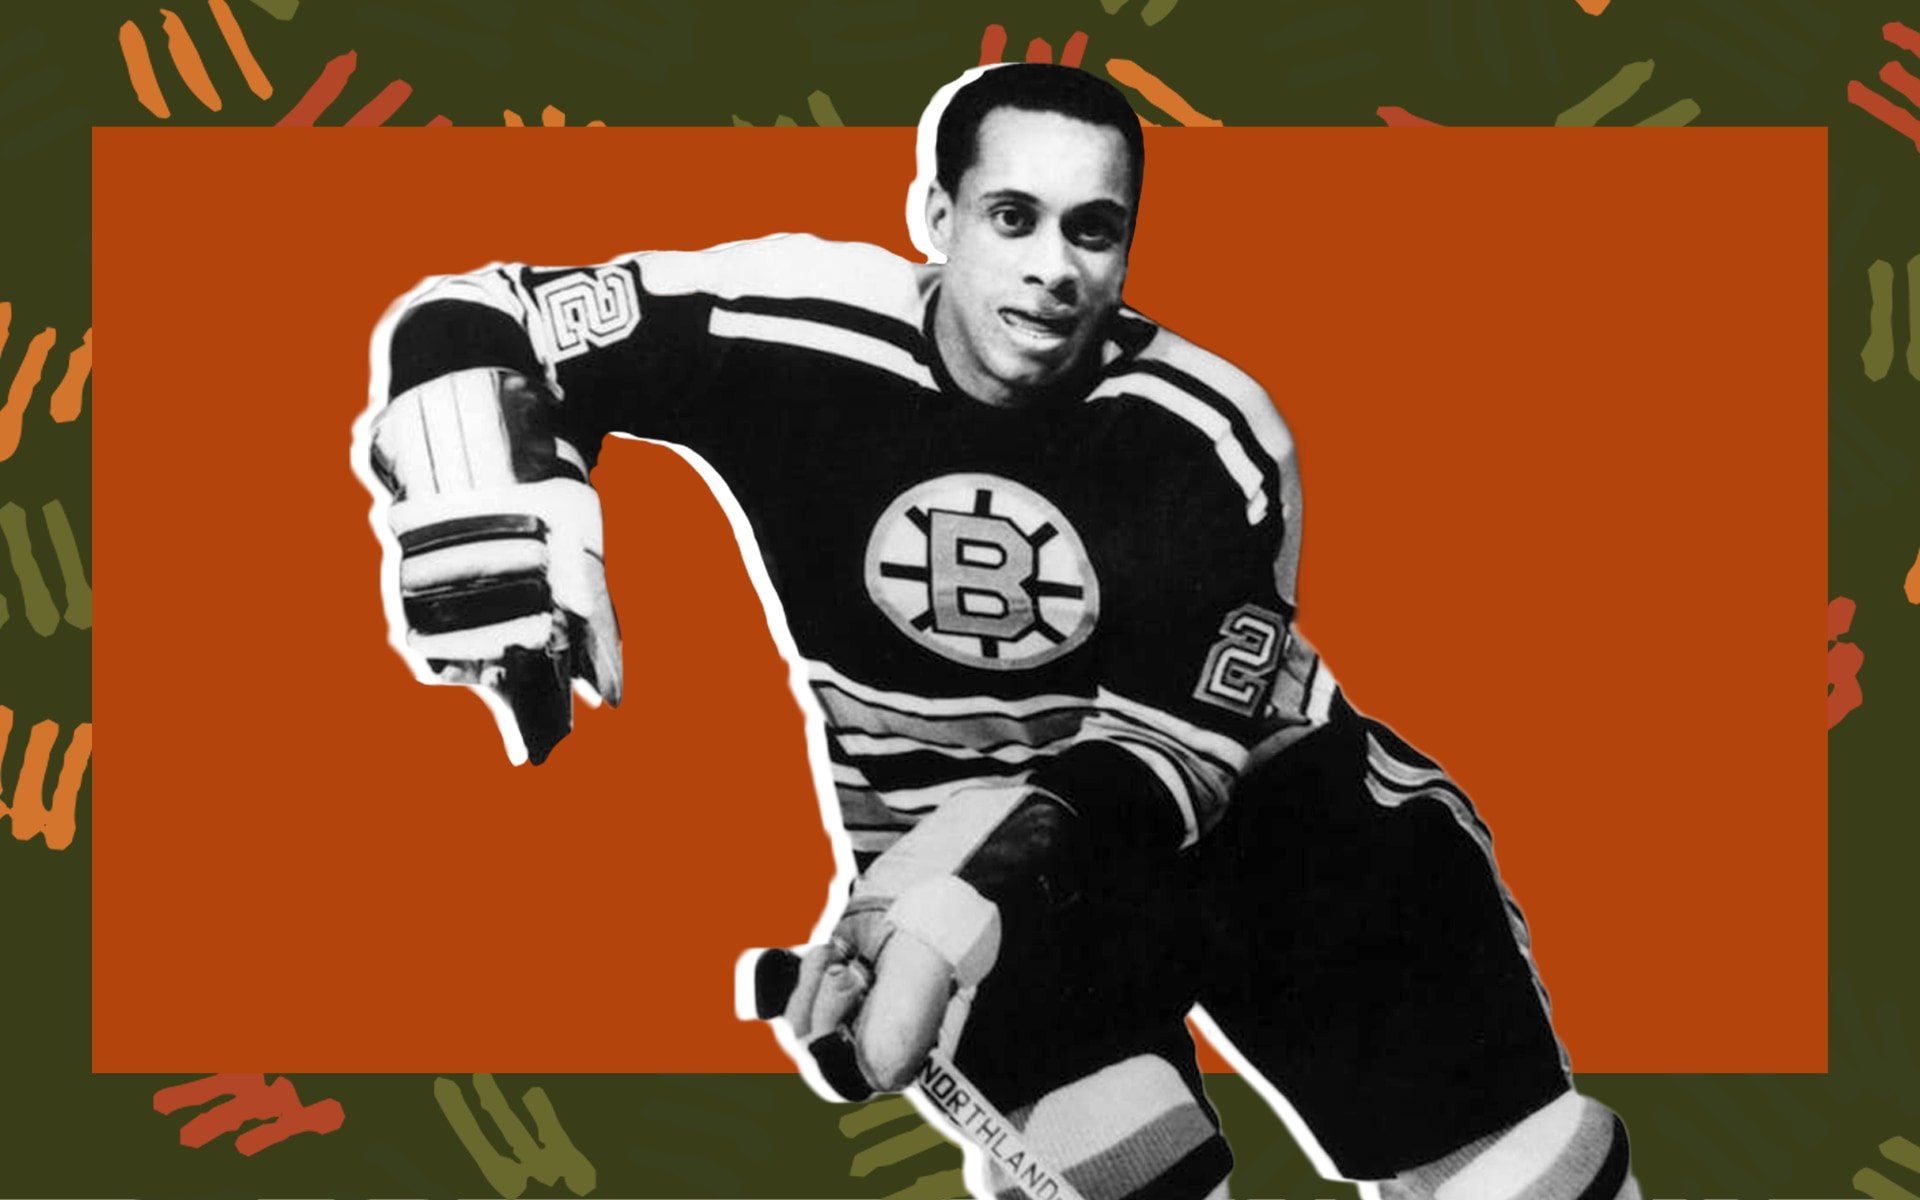 Willie O'Ree, The First Black NHL Player, Discusses Playing Without A Helmet, Meeting Jackie Robinson And Growing Up In Hockey